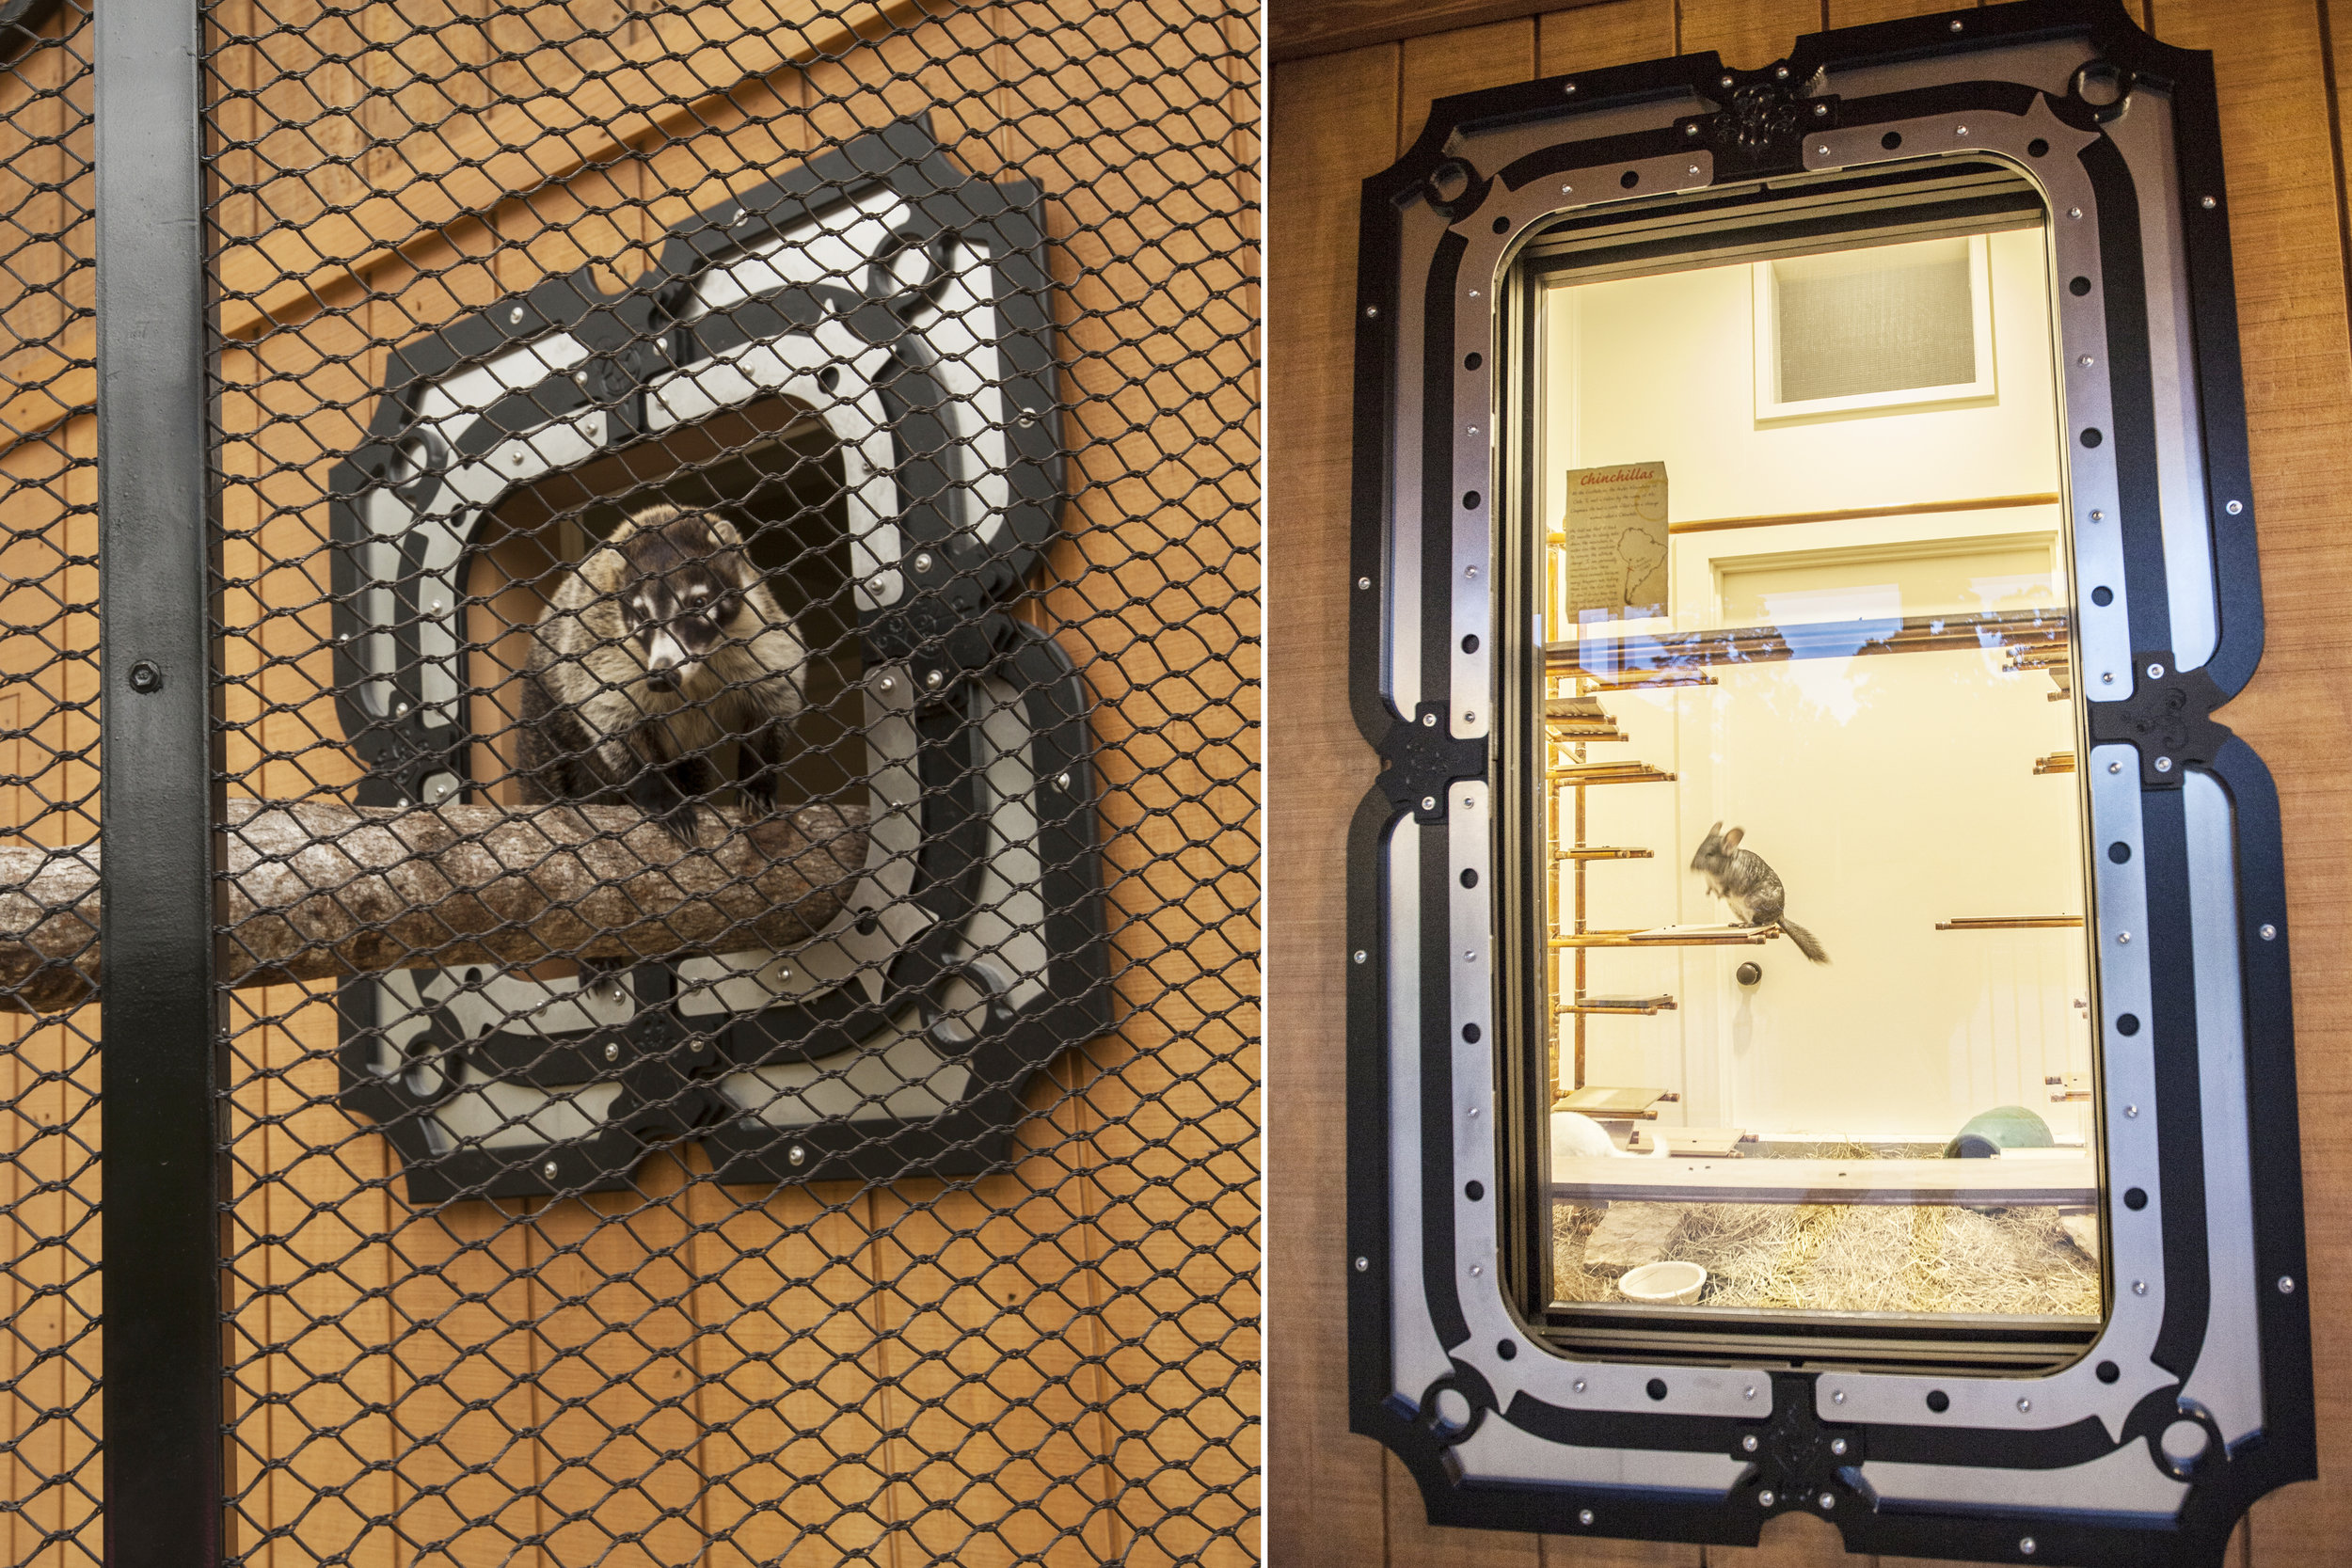 Animal viewing windows and openings everywhere are clad with decorative panels to create a fun and cohesive look throughout the building.